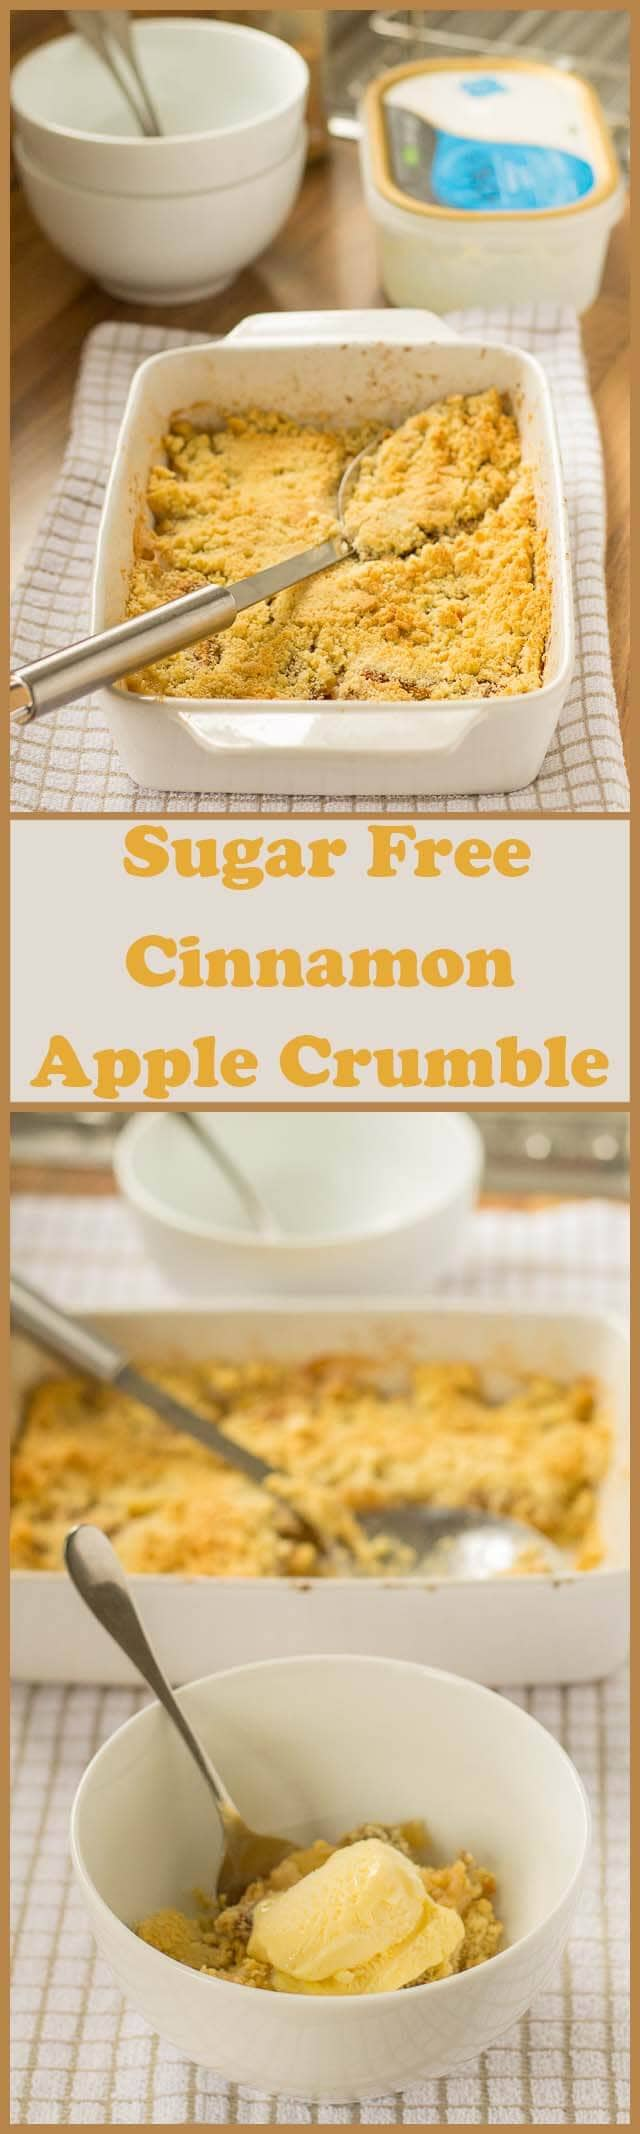 Enjoy this deliciously sweet, sugar free, cinnamon apple crumble knowing that it's much healthier than the traditional sugar laden alternative. This is an incredibly simple pudding recipe too, bursting with fruit and made with only 5 ingredients; it's perfect for dinner parties, so you can let the conversation flow instead of being stuck in the kitchen!